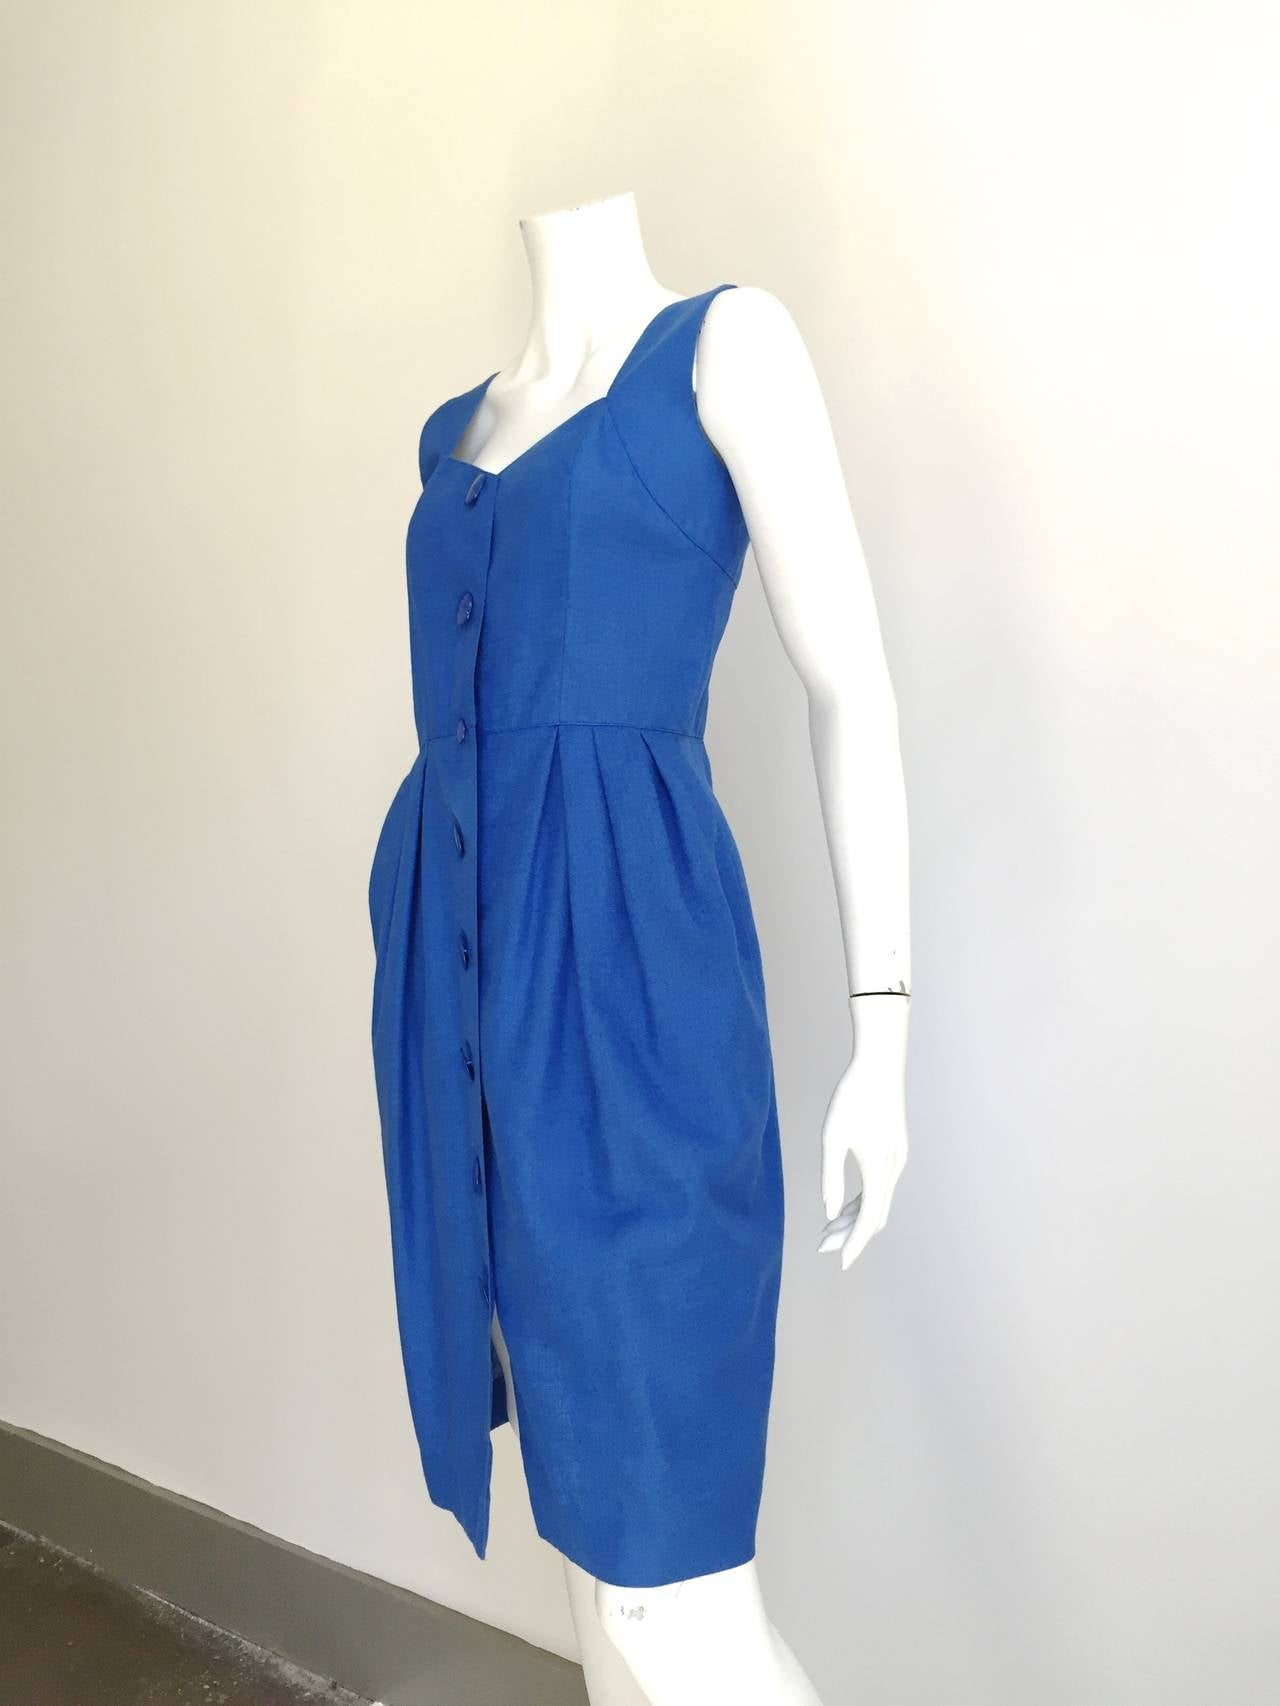 Guy Laroche Paris 80s blue dress with pockets size 6. 7